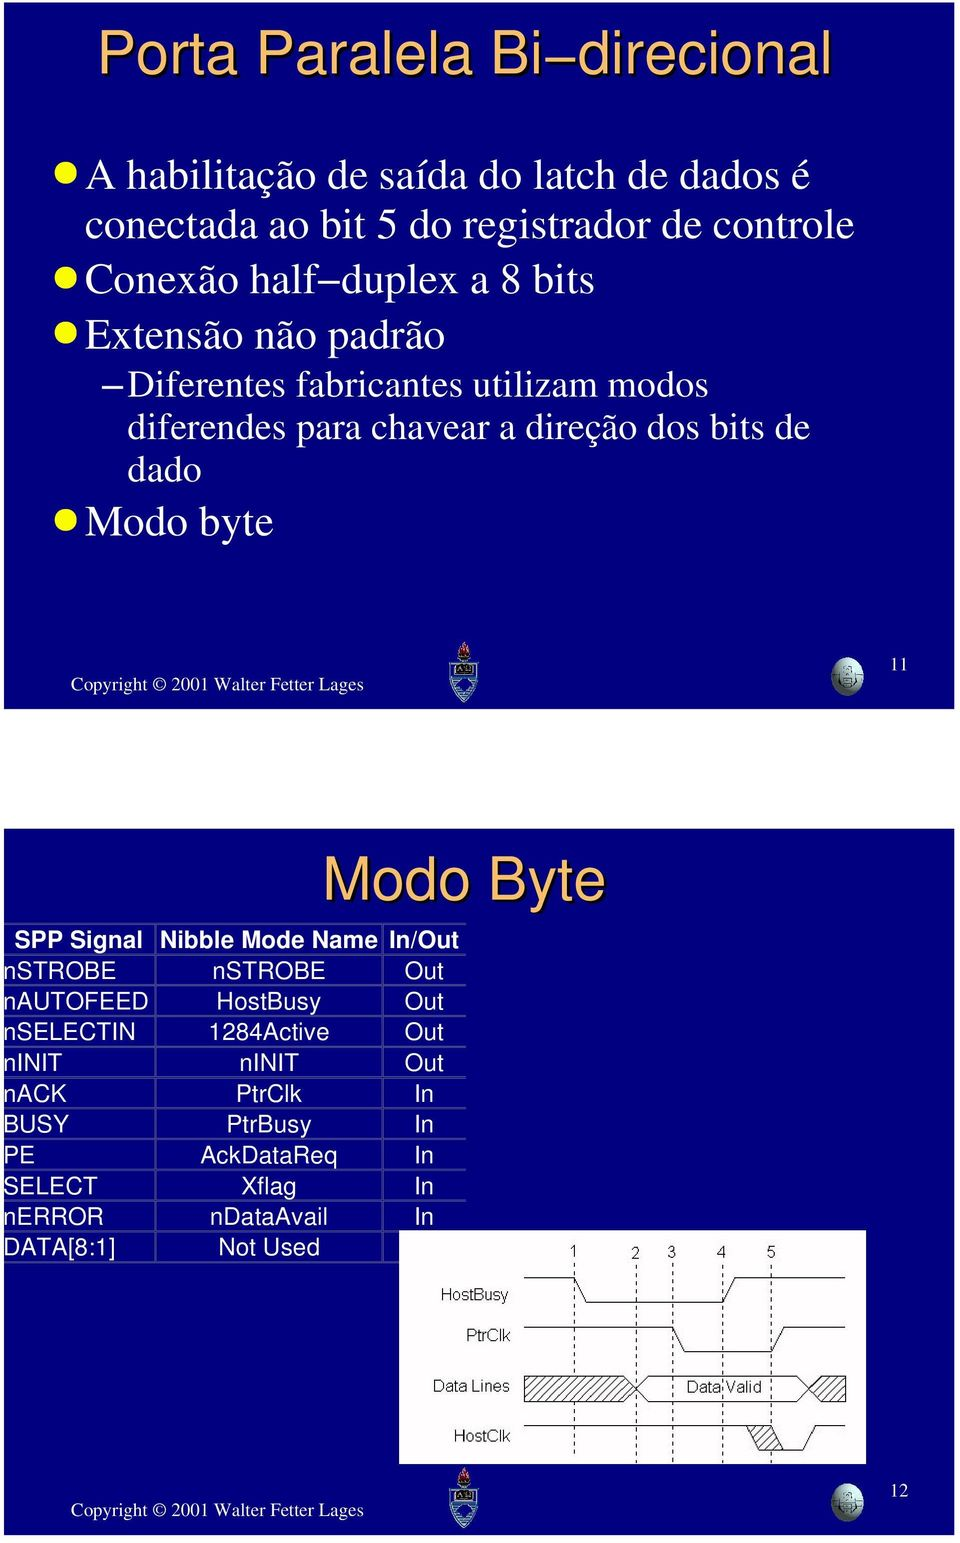 dado Modo byte 11 SPP Signal Nibble Mode Name In/Out nstrobe nstrobe Out nautofeed HostBusy Out nselectin 1284Active Out